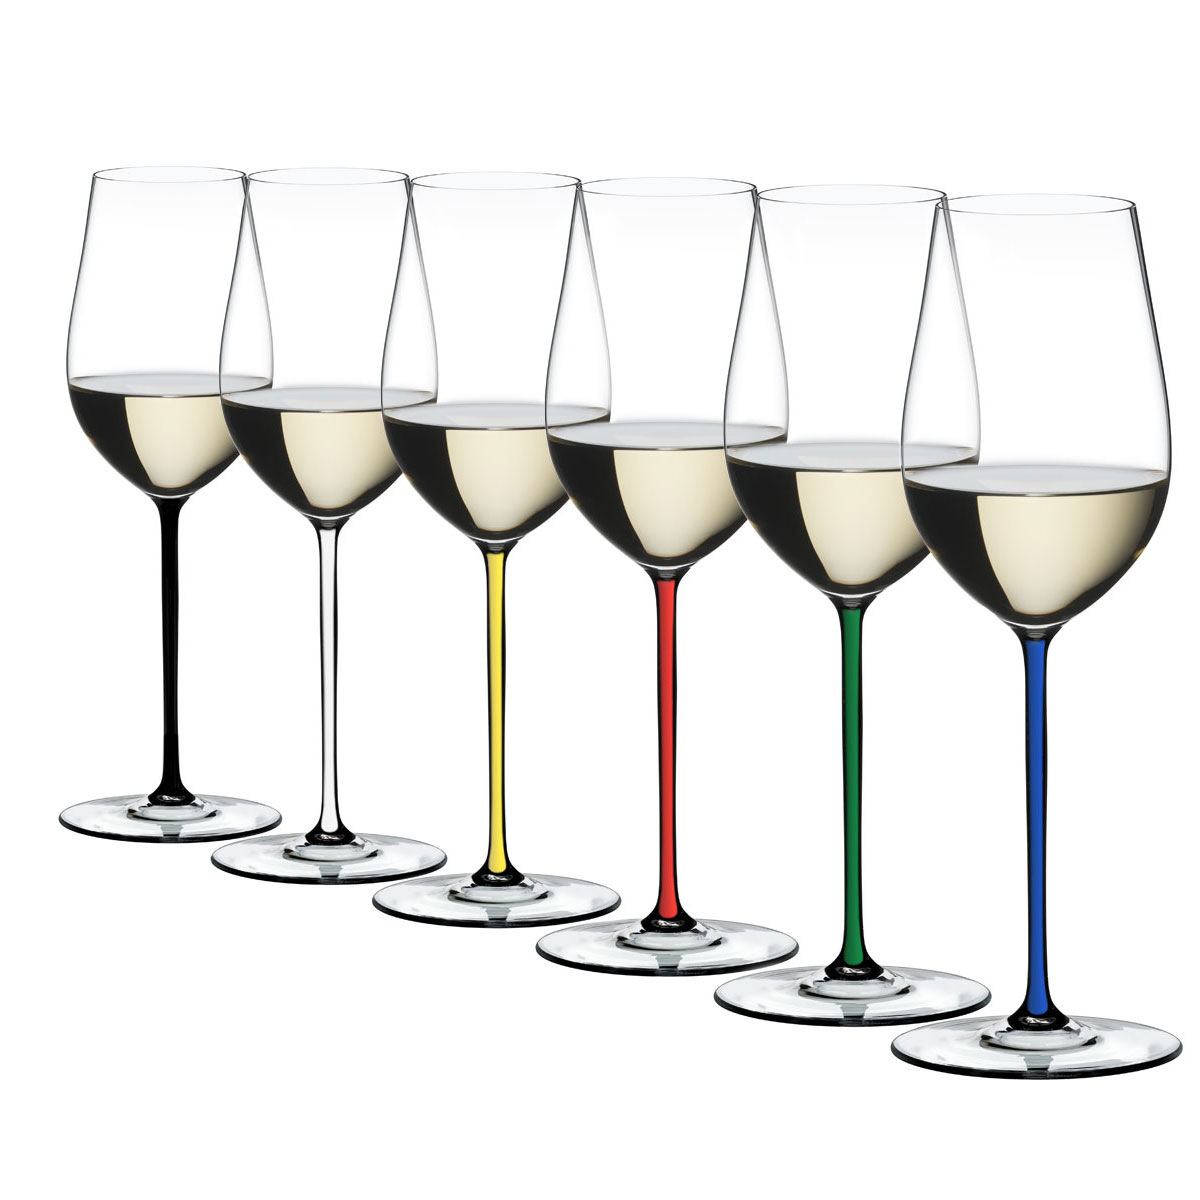 Riedel Fatto A Mano, Riesling, Zinfandel Glasses Wine Glasses, Set of 6